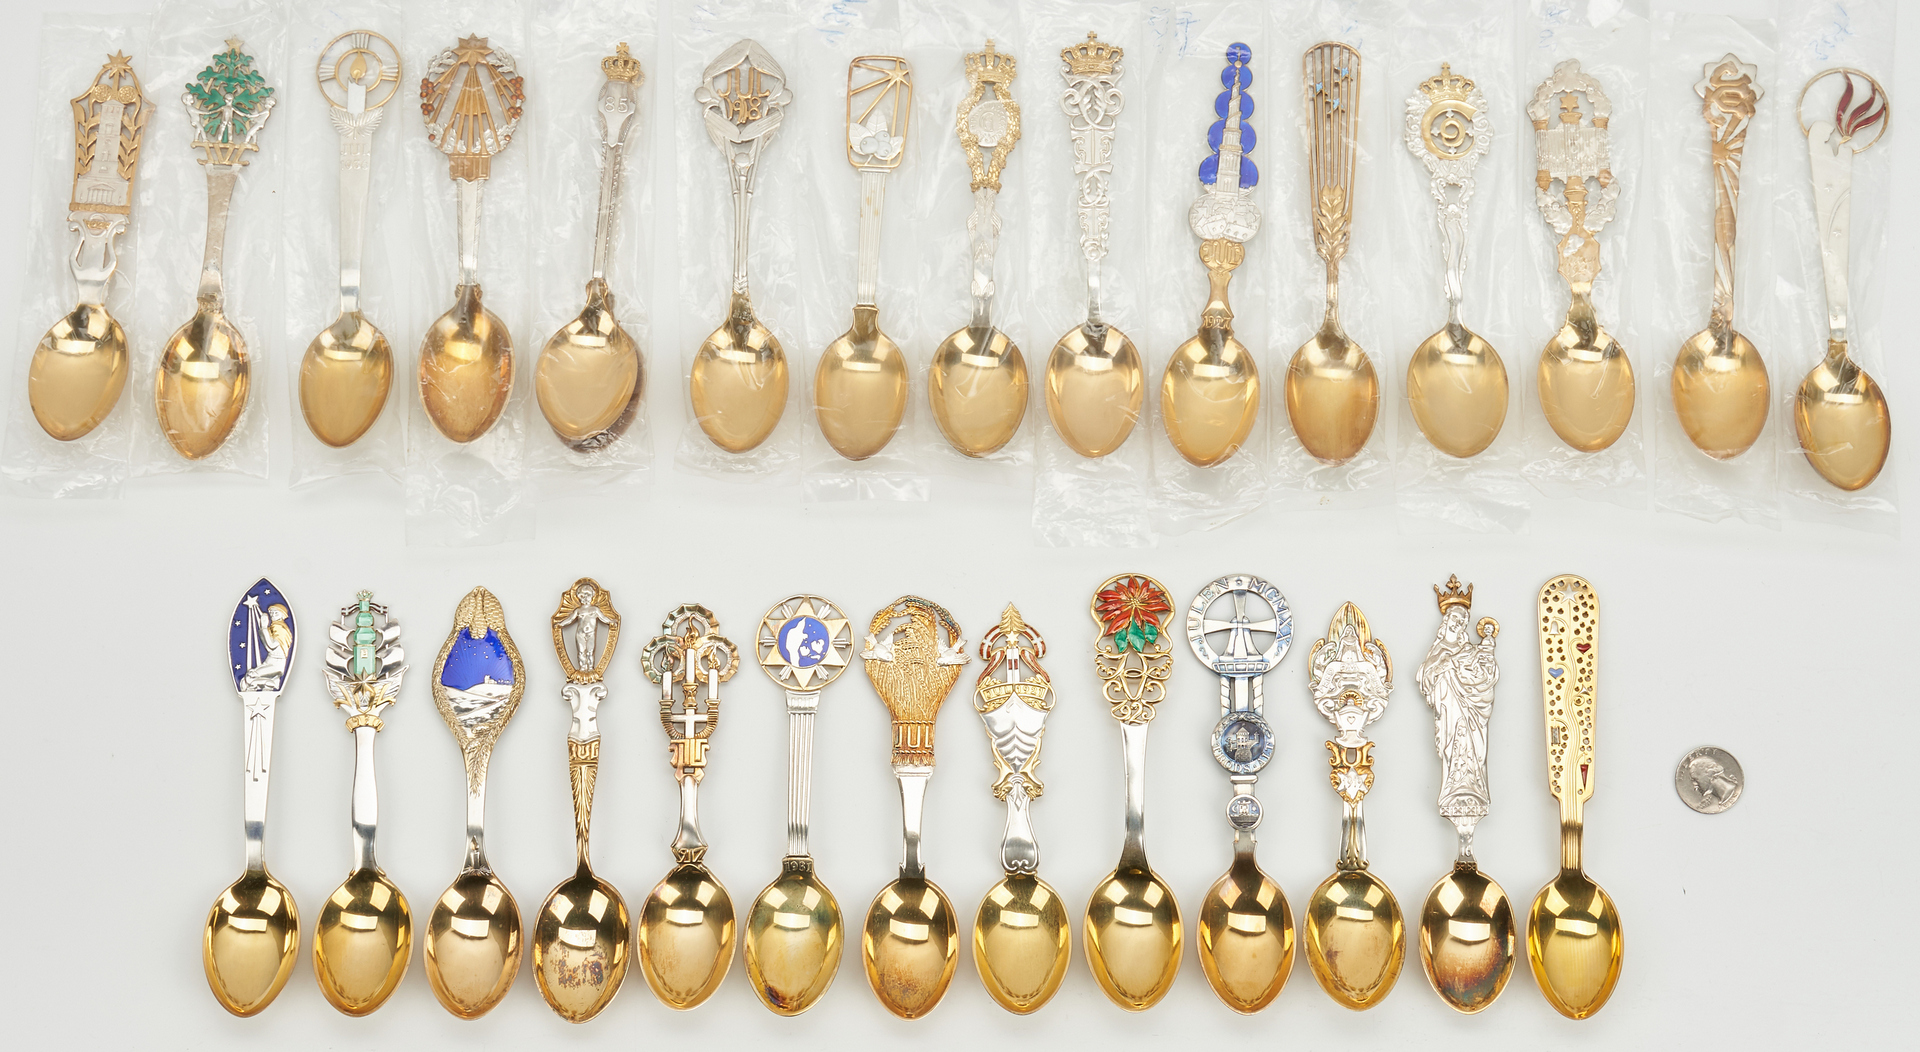 Lot 440: 29 A. Michelsen Gilded Sterling Silver Spoons, 1910-1938